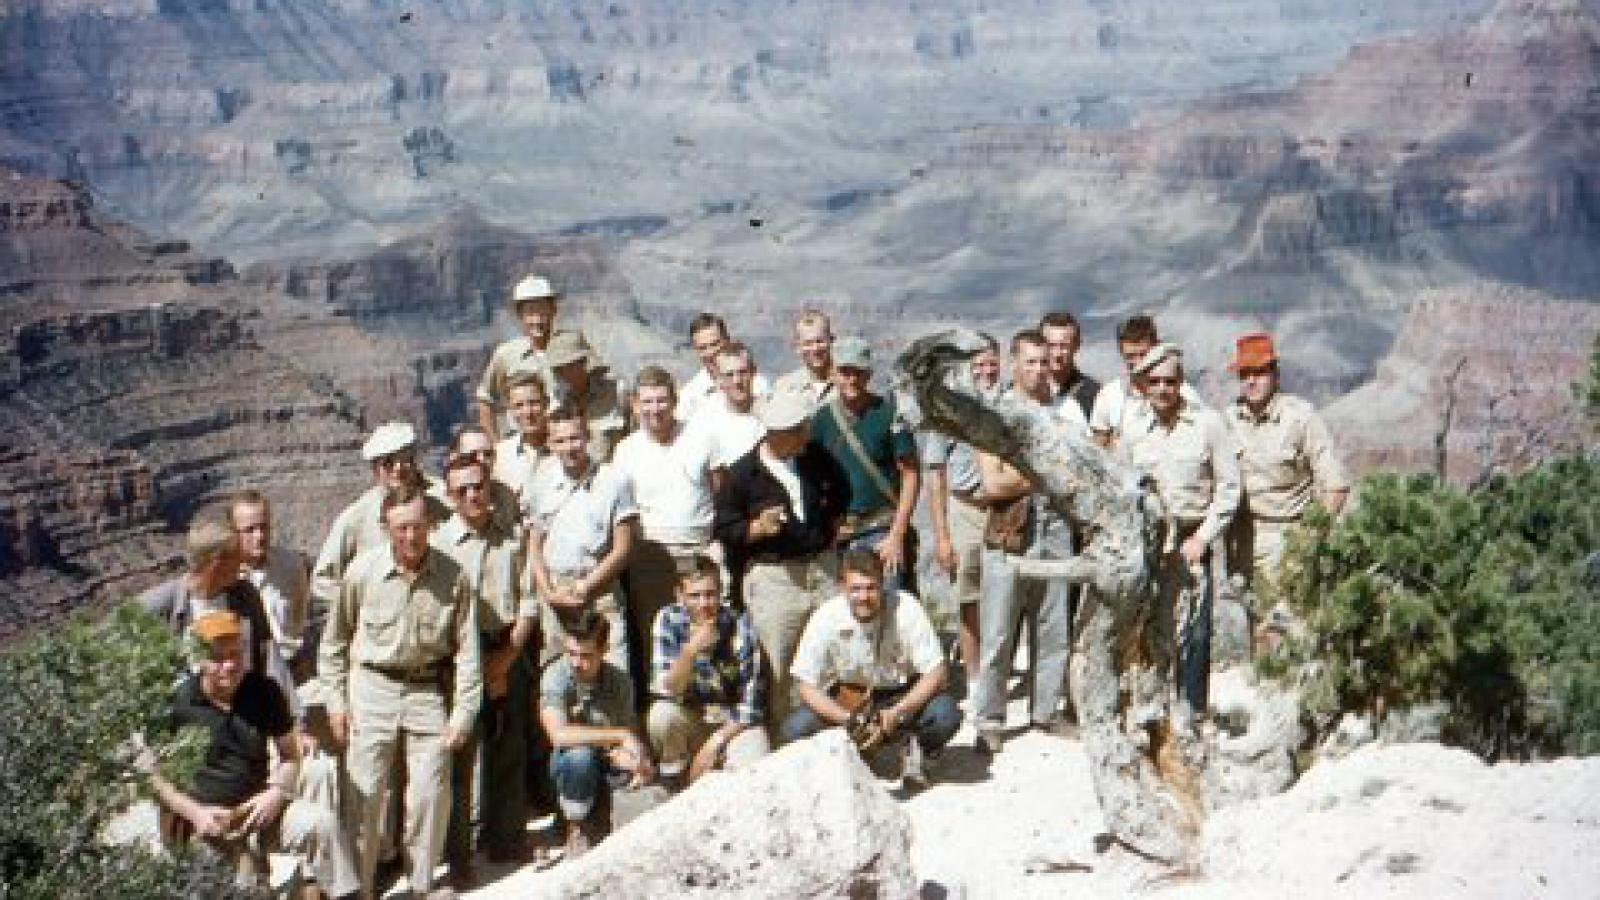 Field Camp group photo from 1955 overlooking a canyon